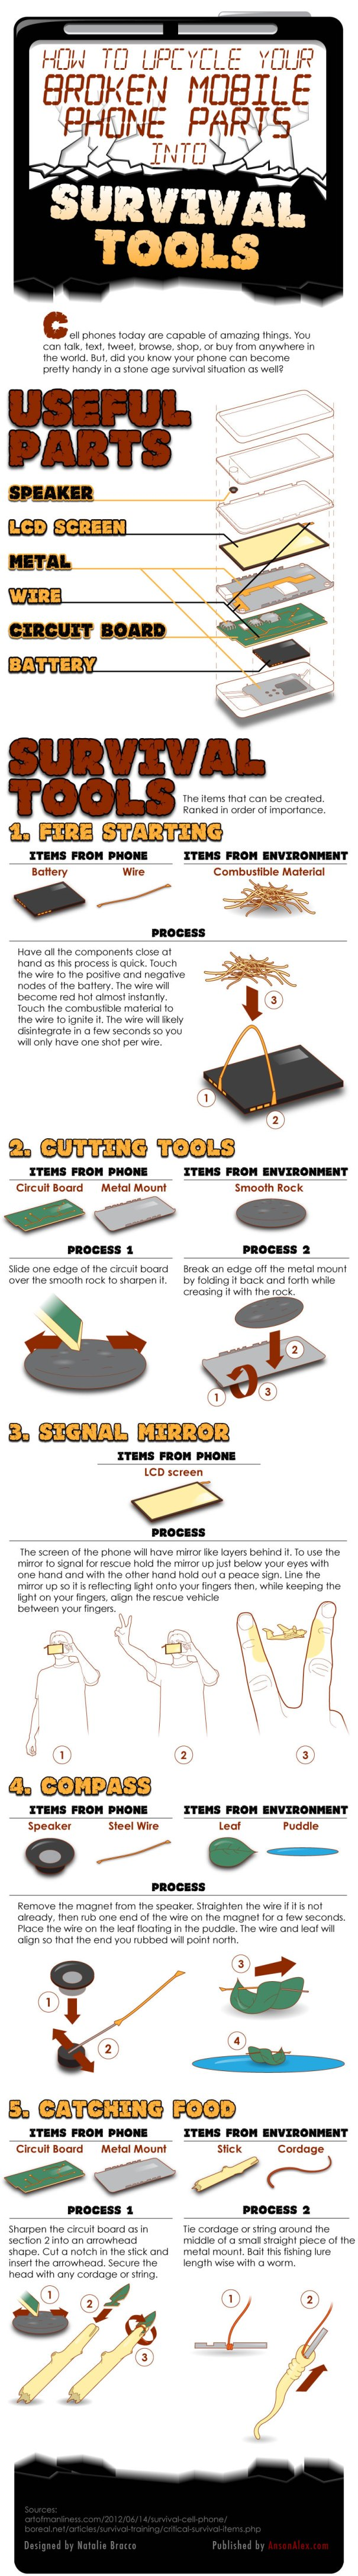 How-to-Use Parts Broken Cell Phone as Survival Tools Infographic